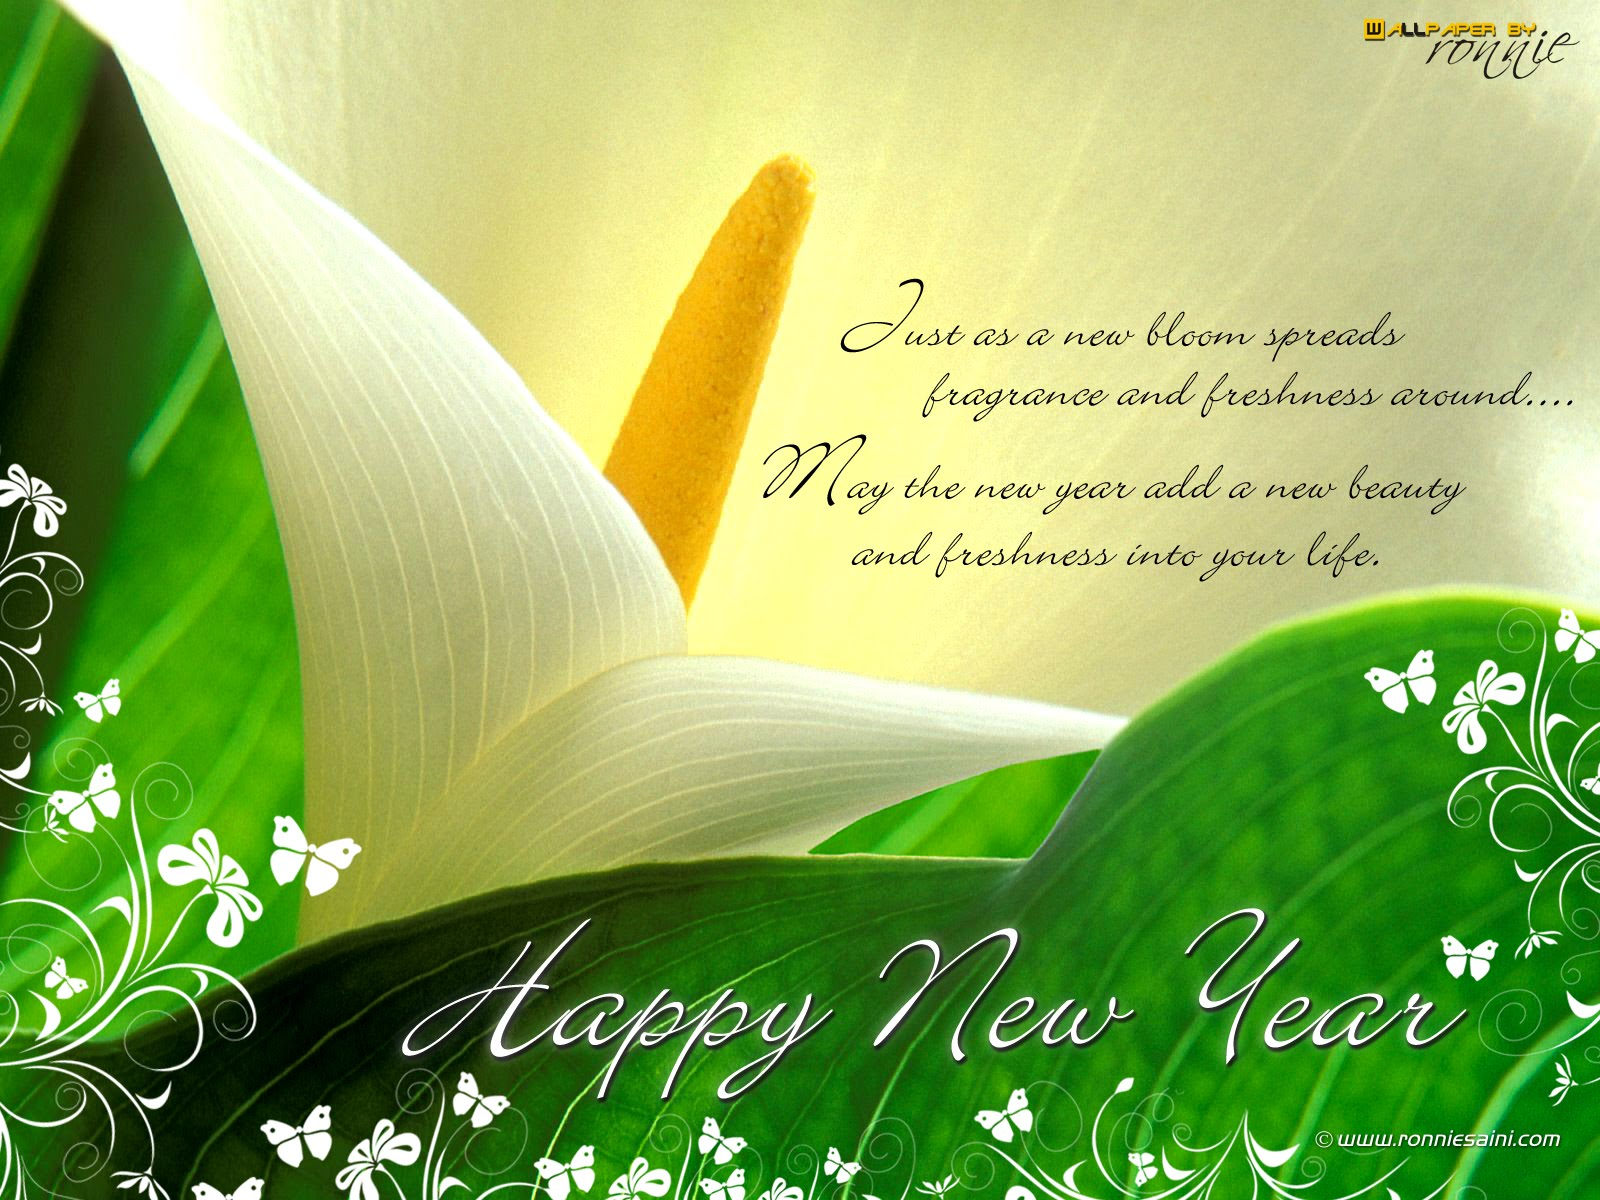 Happy New Year Wishes and Greetings. 1600 x 1200.Greeting For New Year In Hindi